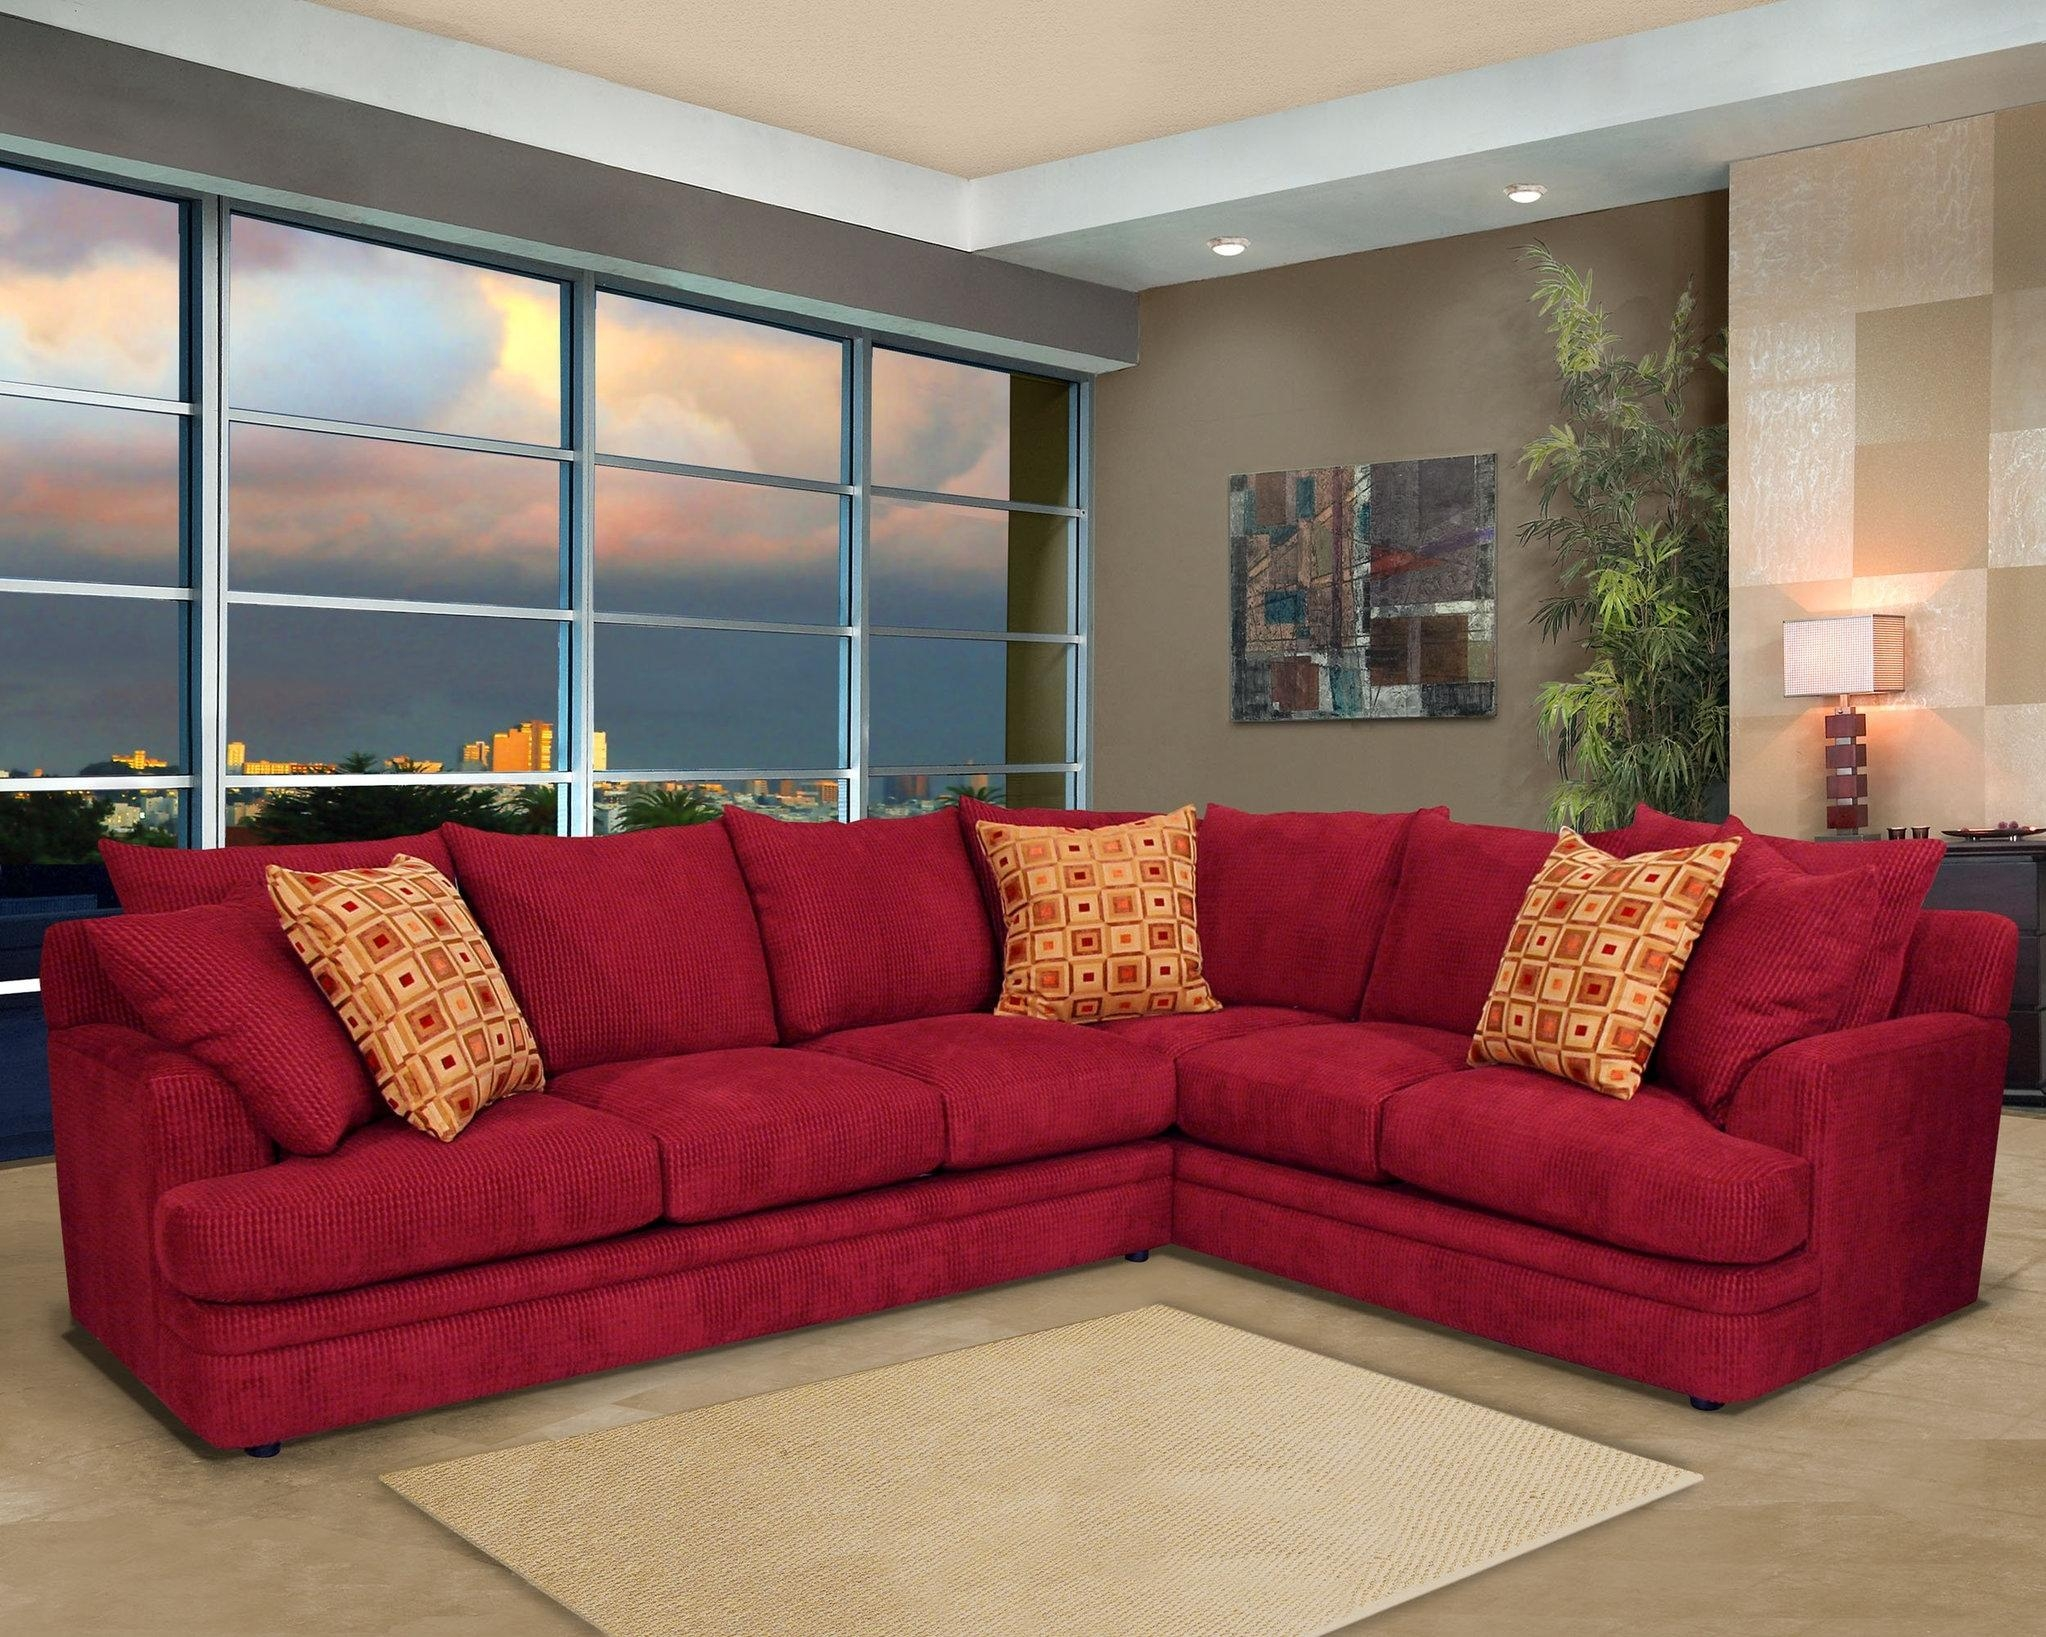 Furniture: Cheap Couches For Sale Under $100 | Couches And Sofas Intended For Cheap Red Sofas (Image 9 of 20)